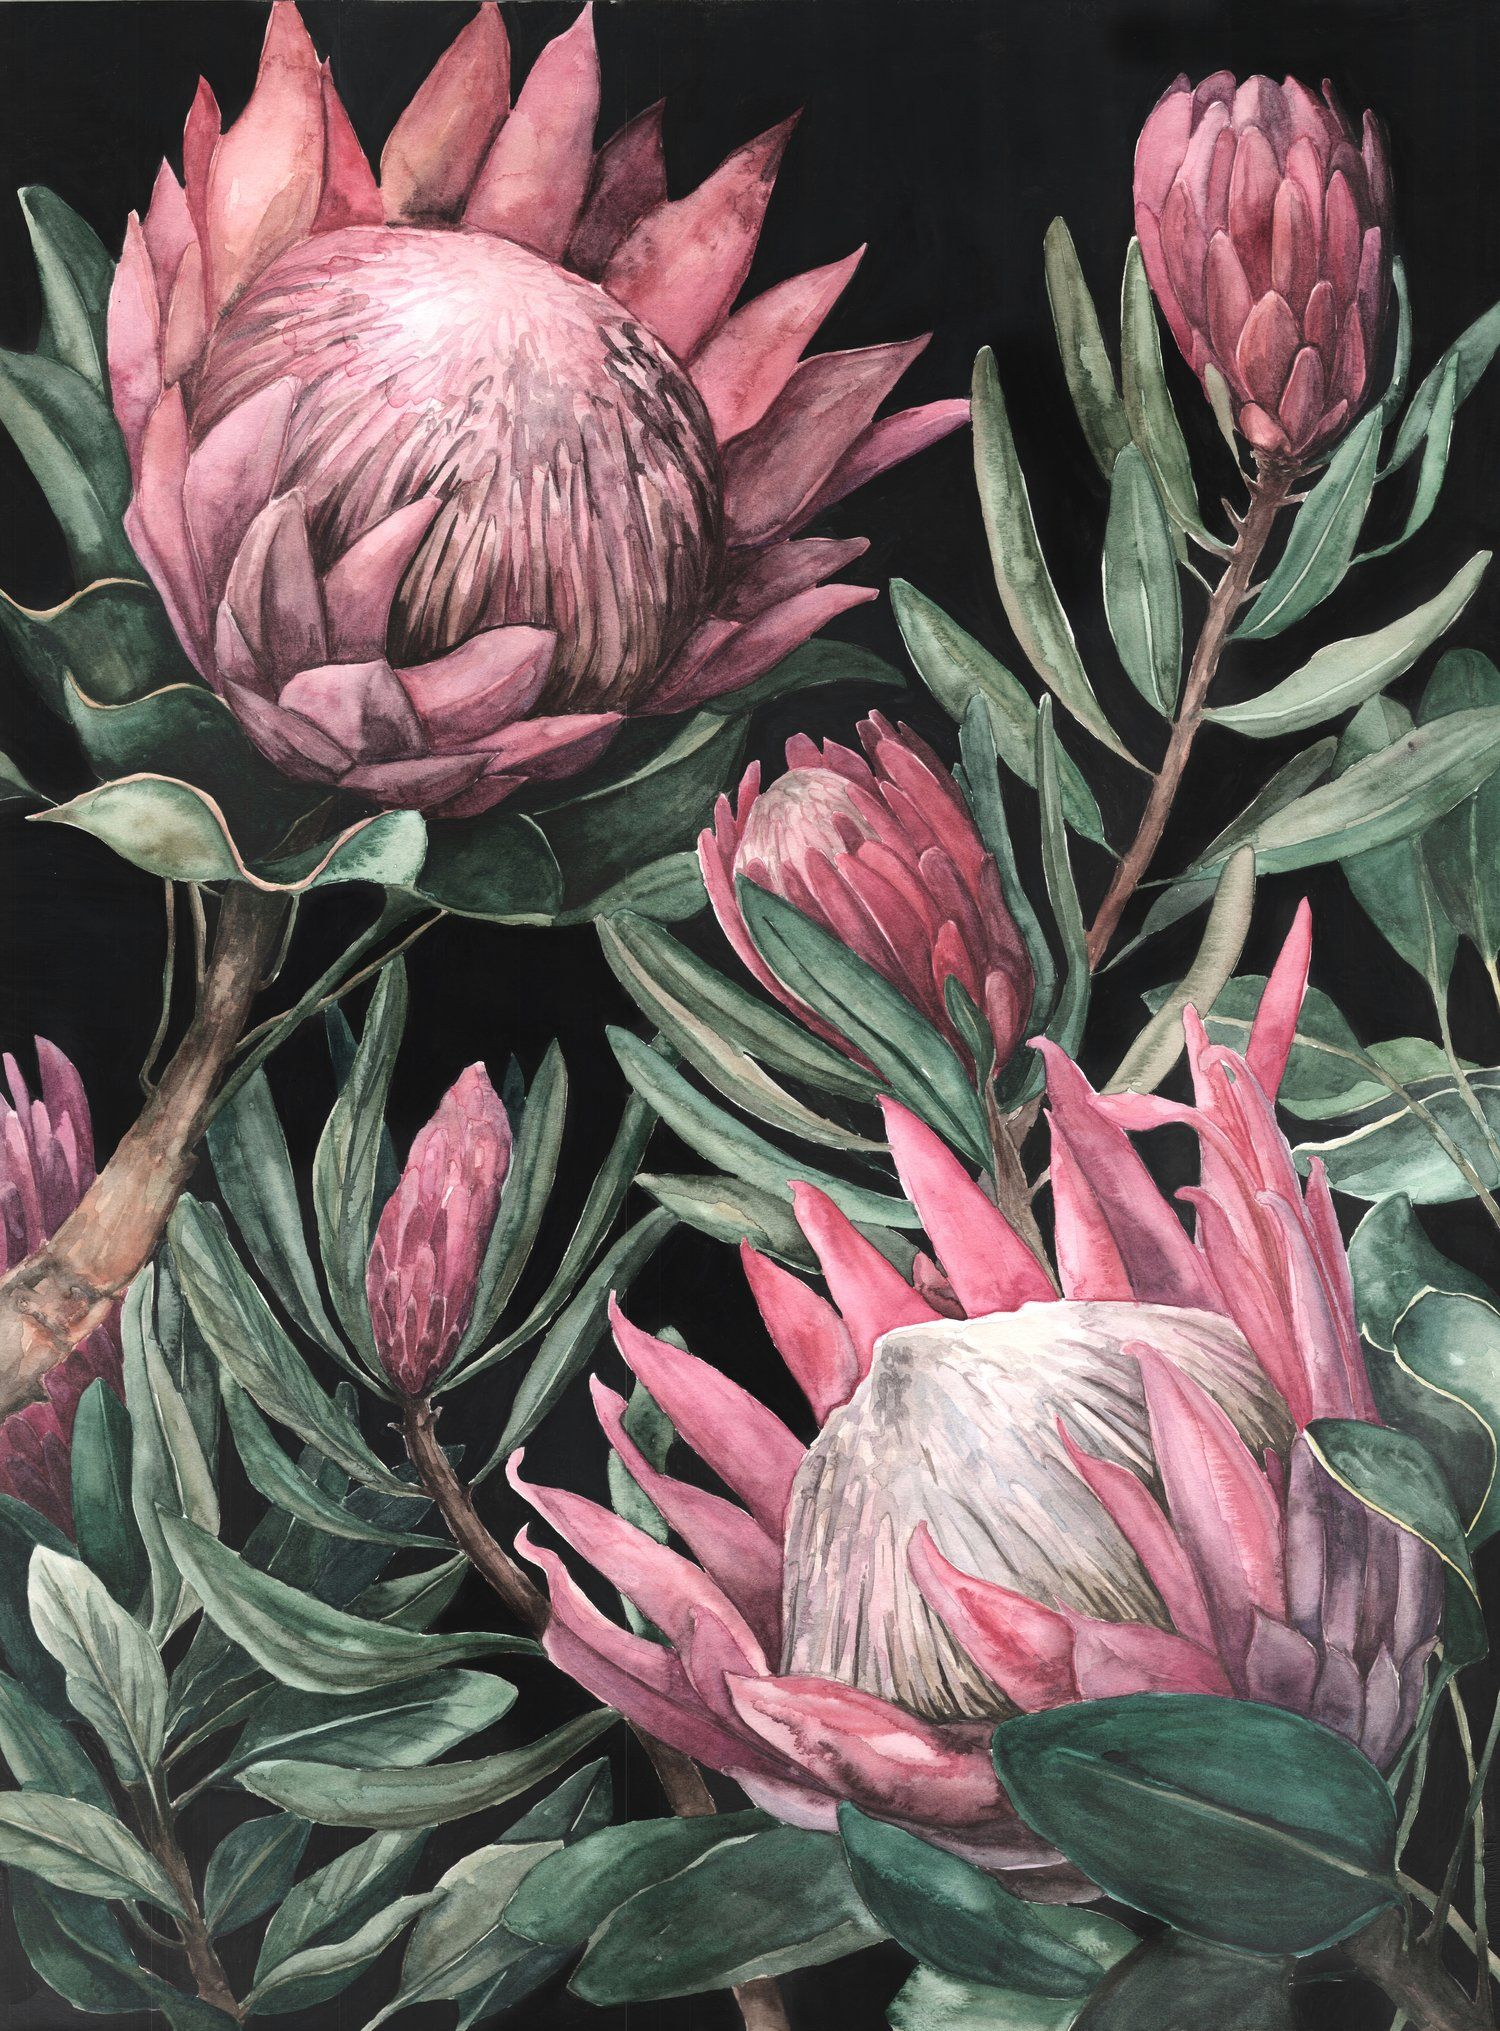 Pin By Chac Fool On Botanical Drawings In 2020 Protea Art Protea Flower Flower Art